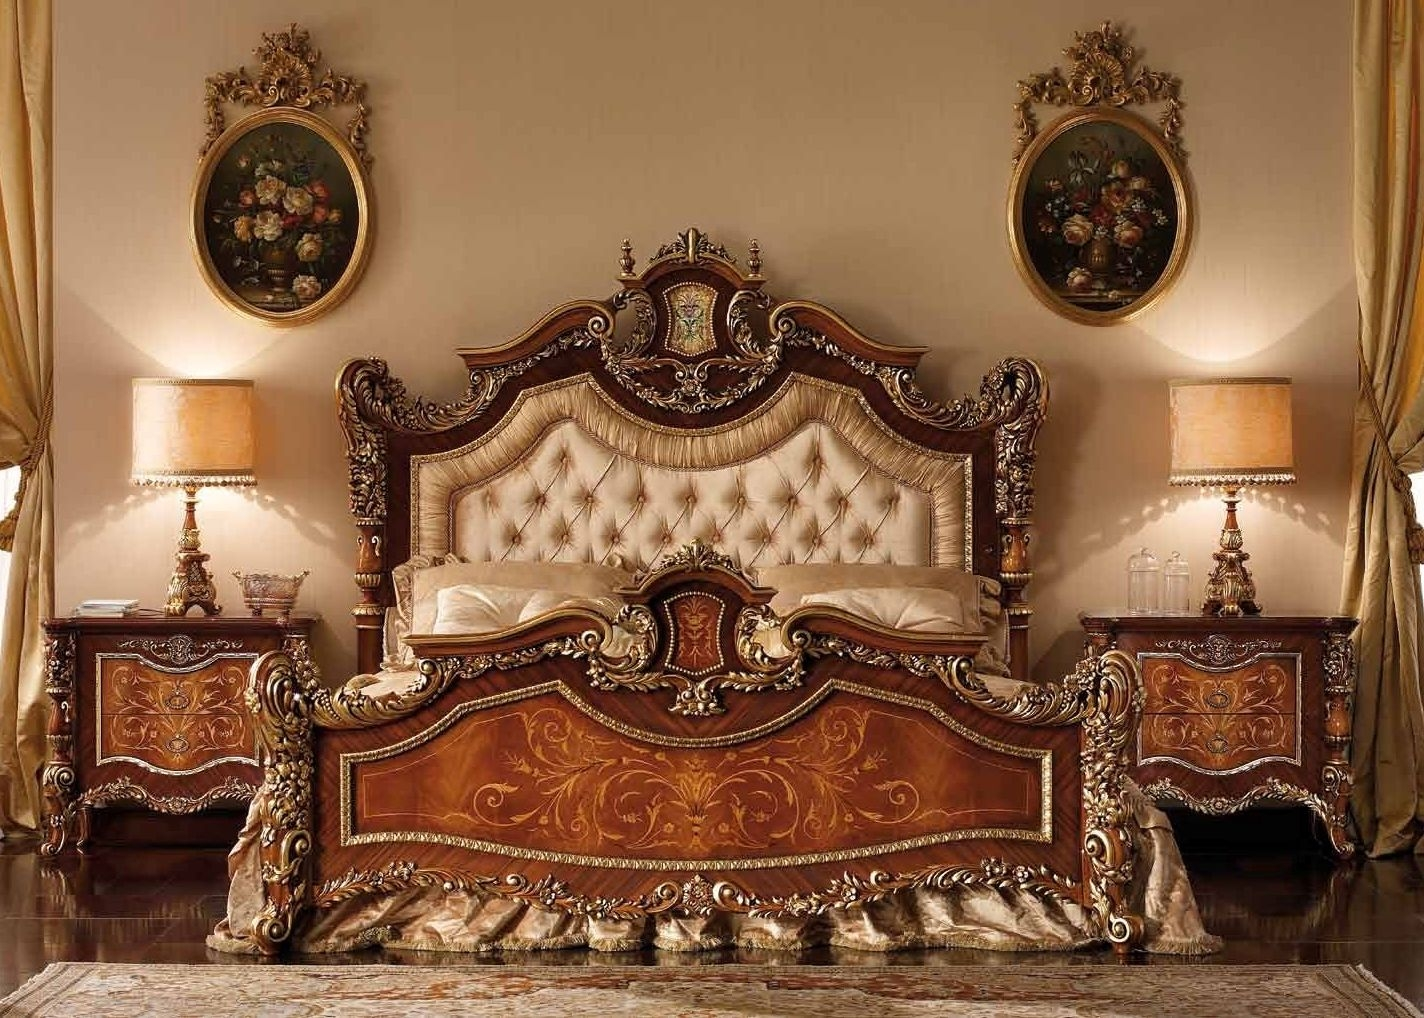 tufted bedroom furniture. BEDS - Queen, King \u0026 California Sizes Master Bed With Tufted Headboard. Furniture Bedroom 0